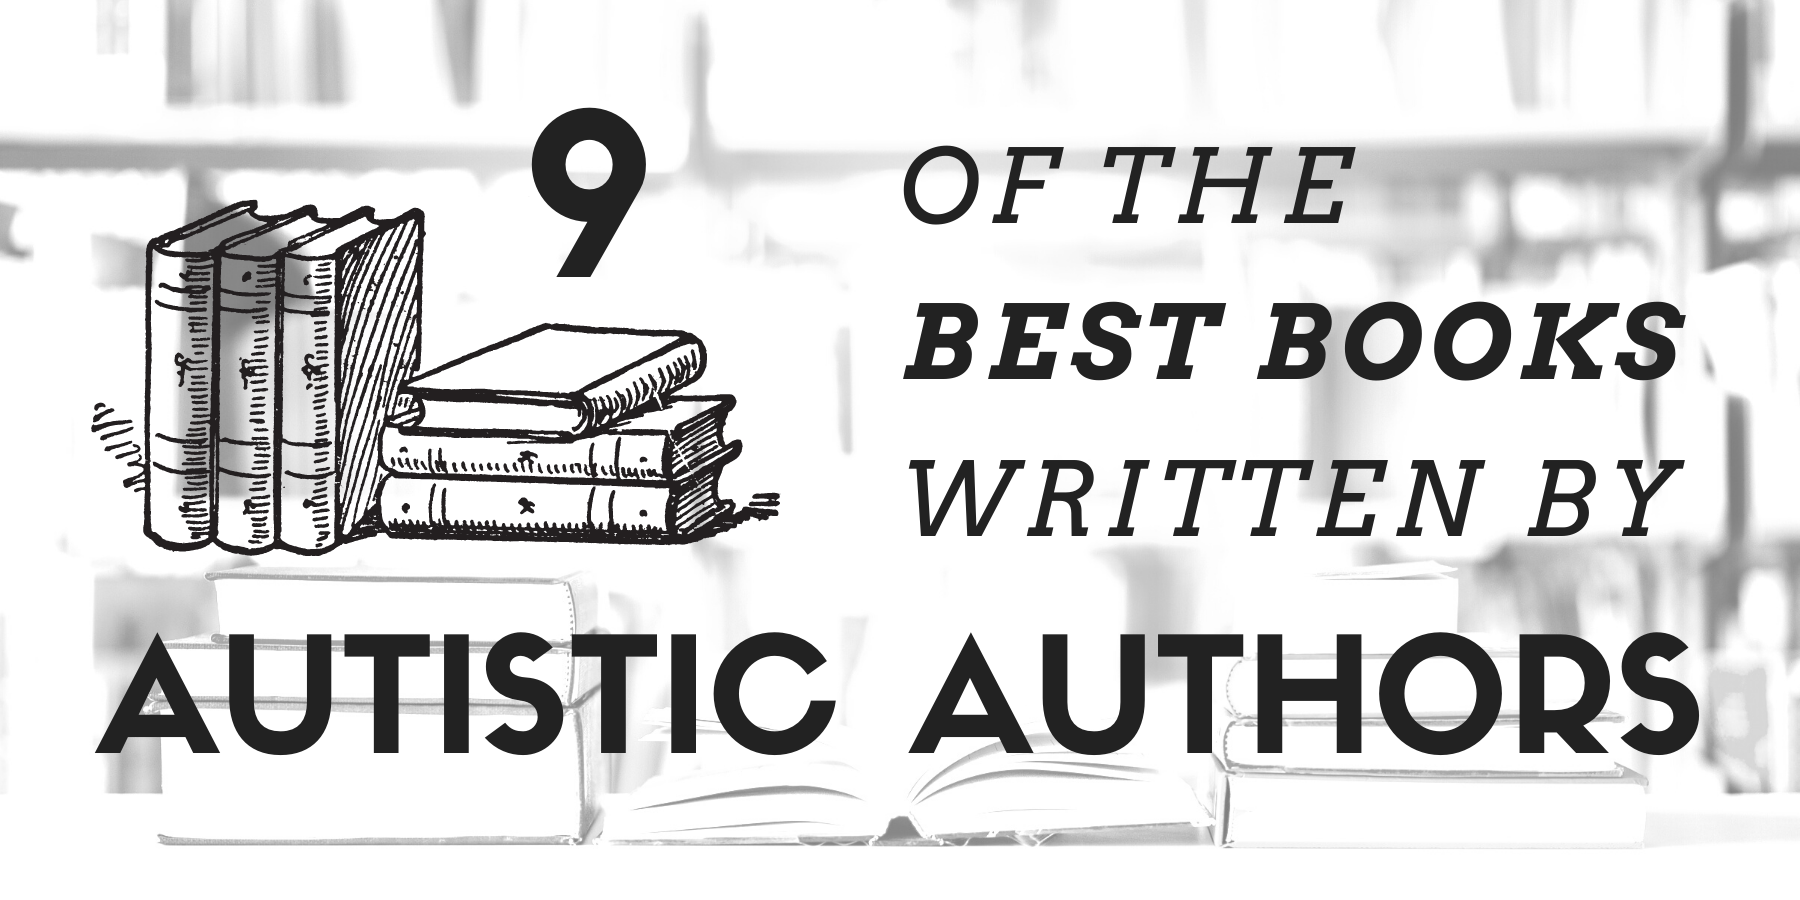 best books by autistic authors - best books written by autistic authors